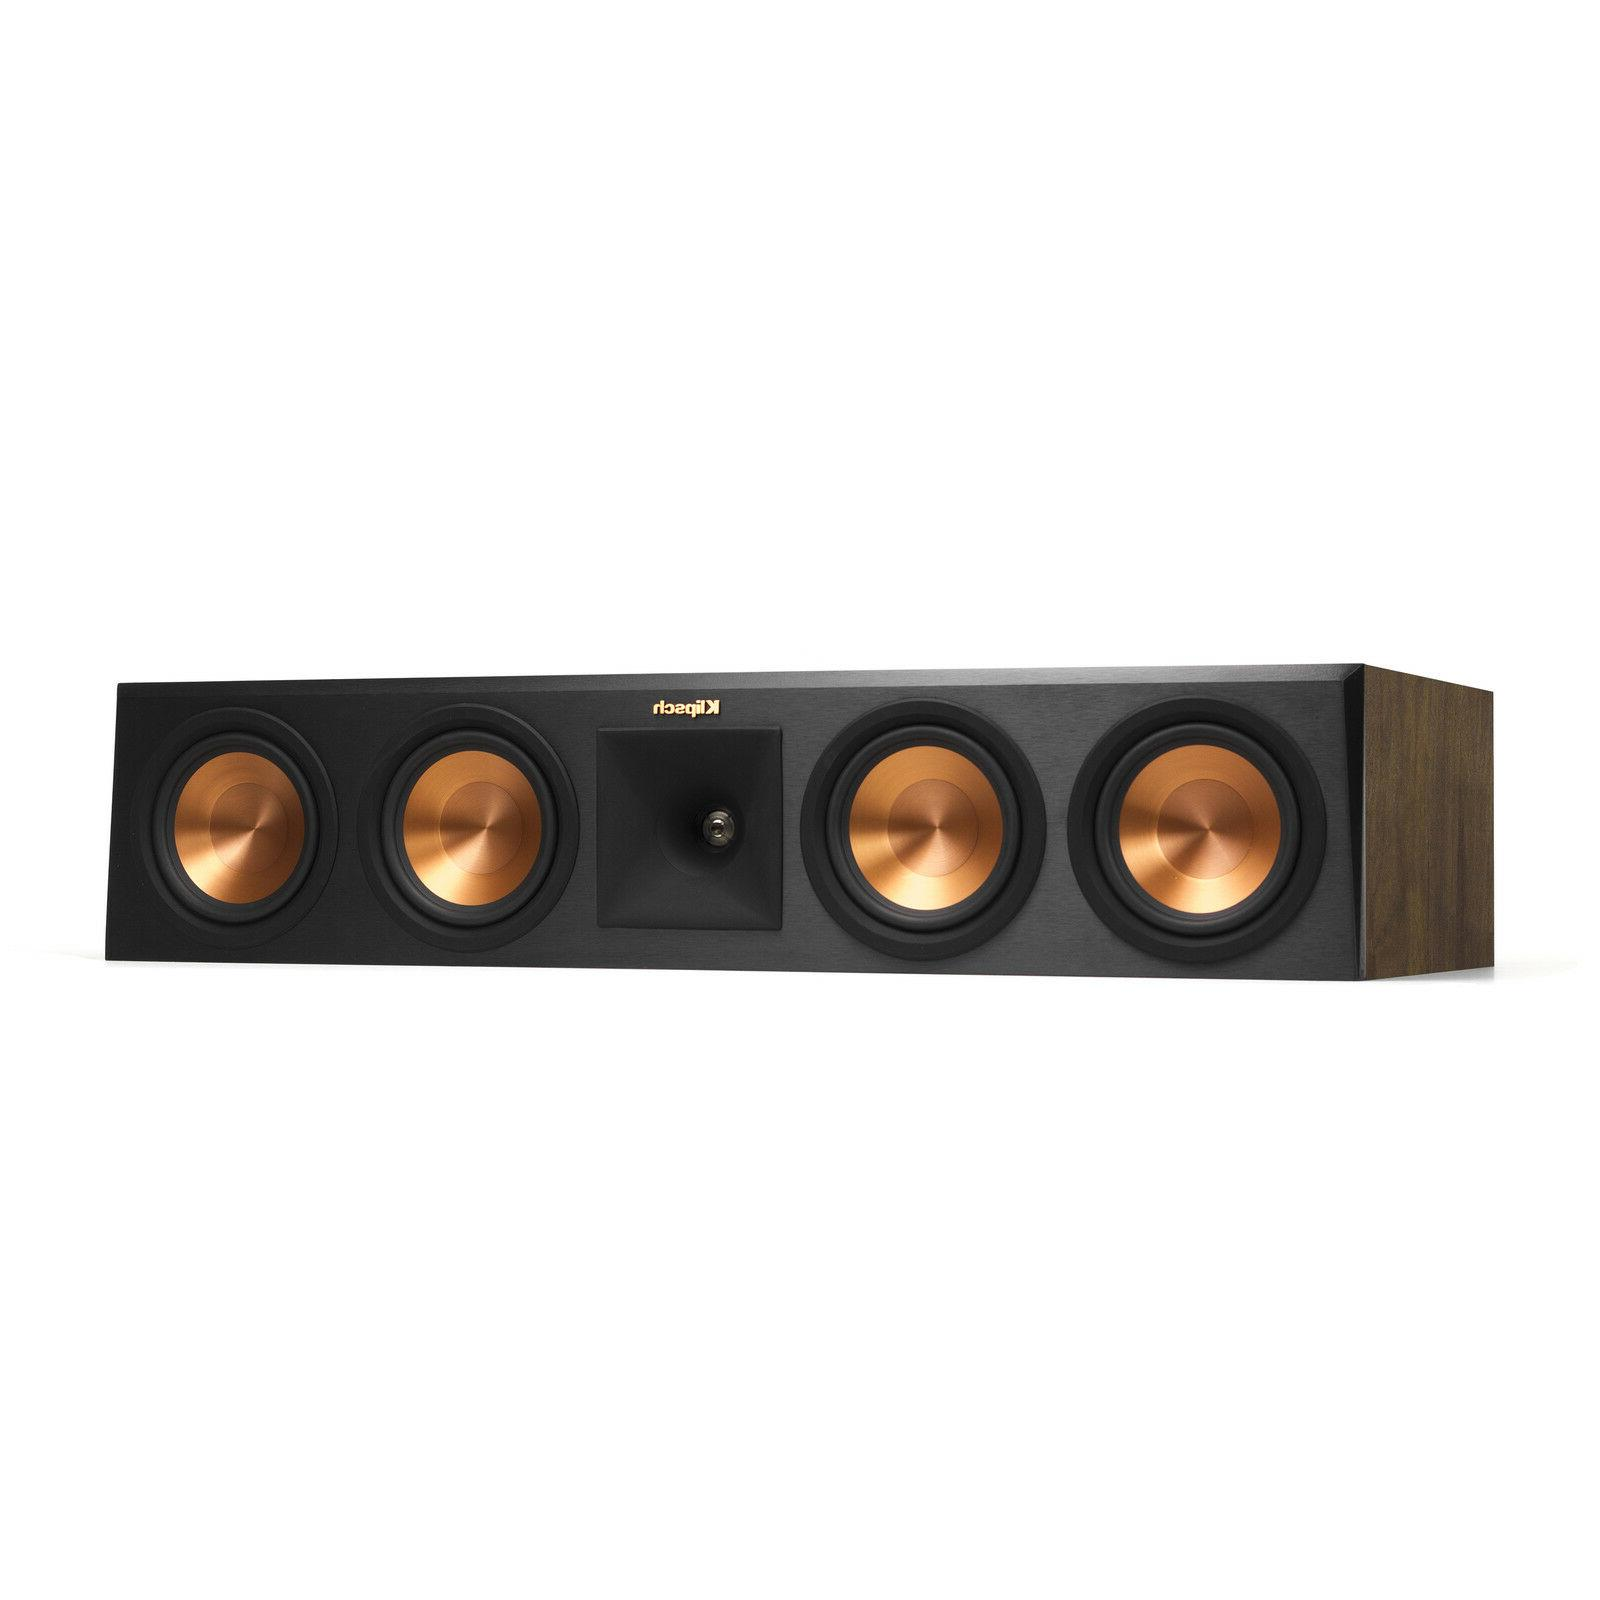 Klipsch RP-450CA Center Channel Speaker Atmos